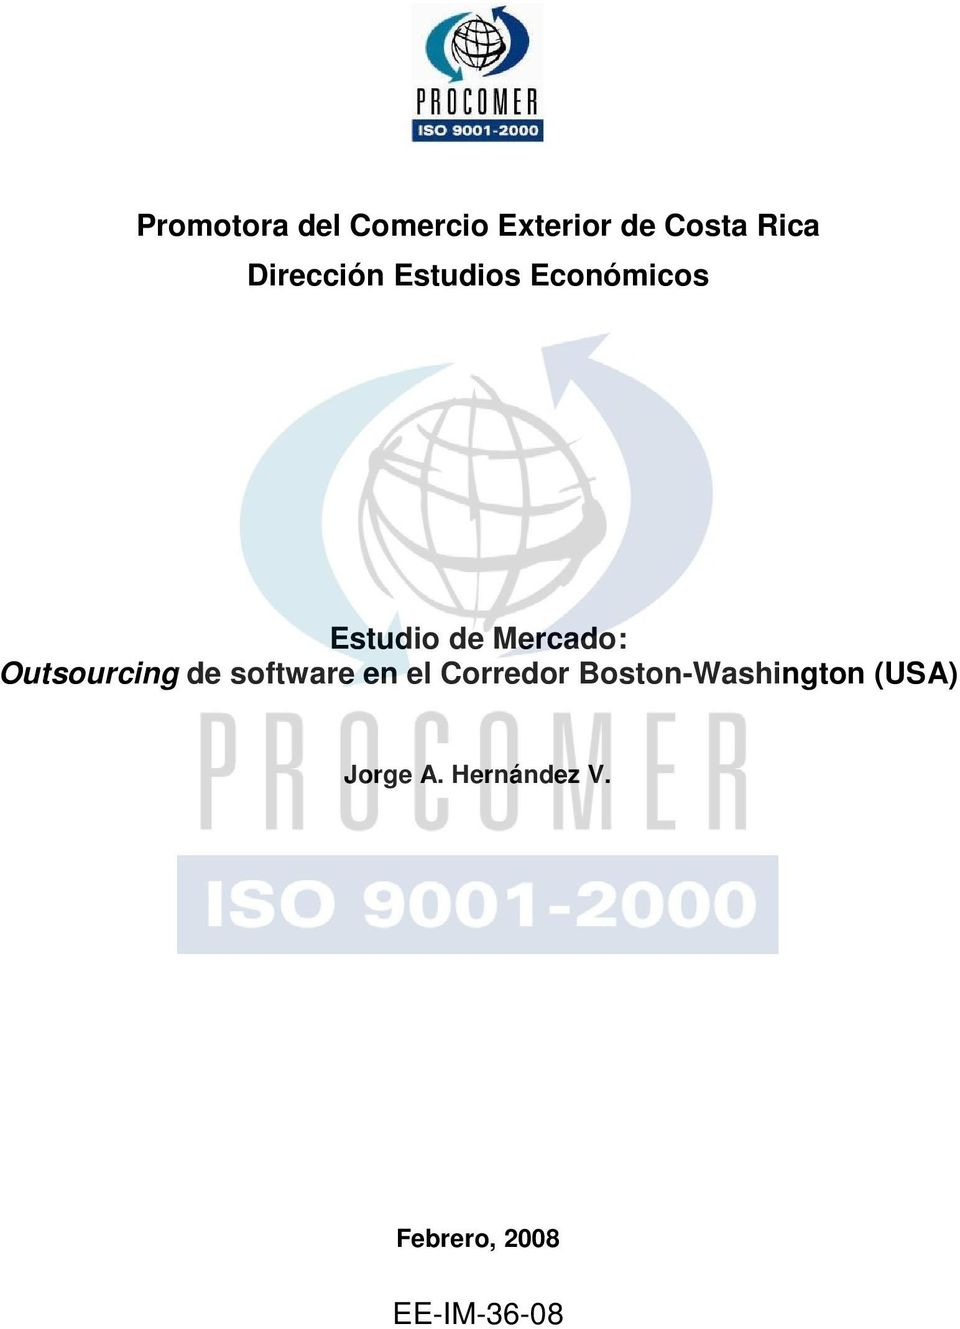 Outsourcing de software en el Corredor